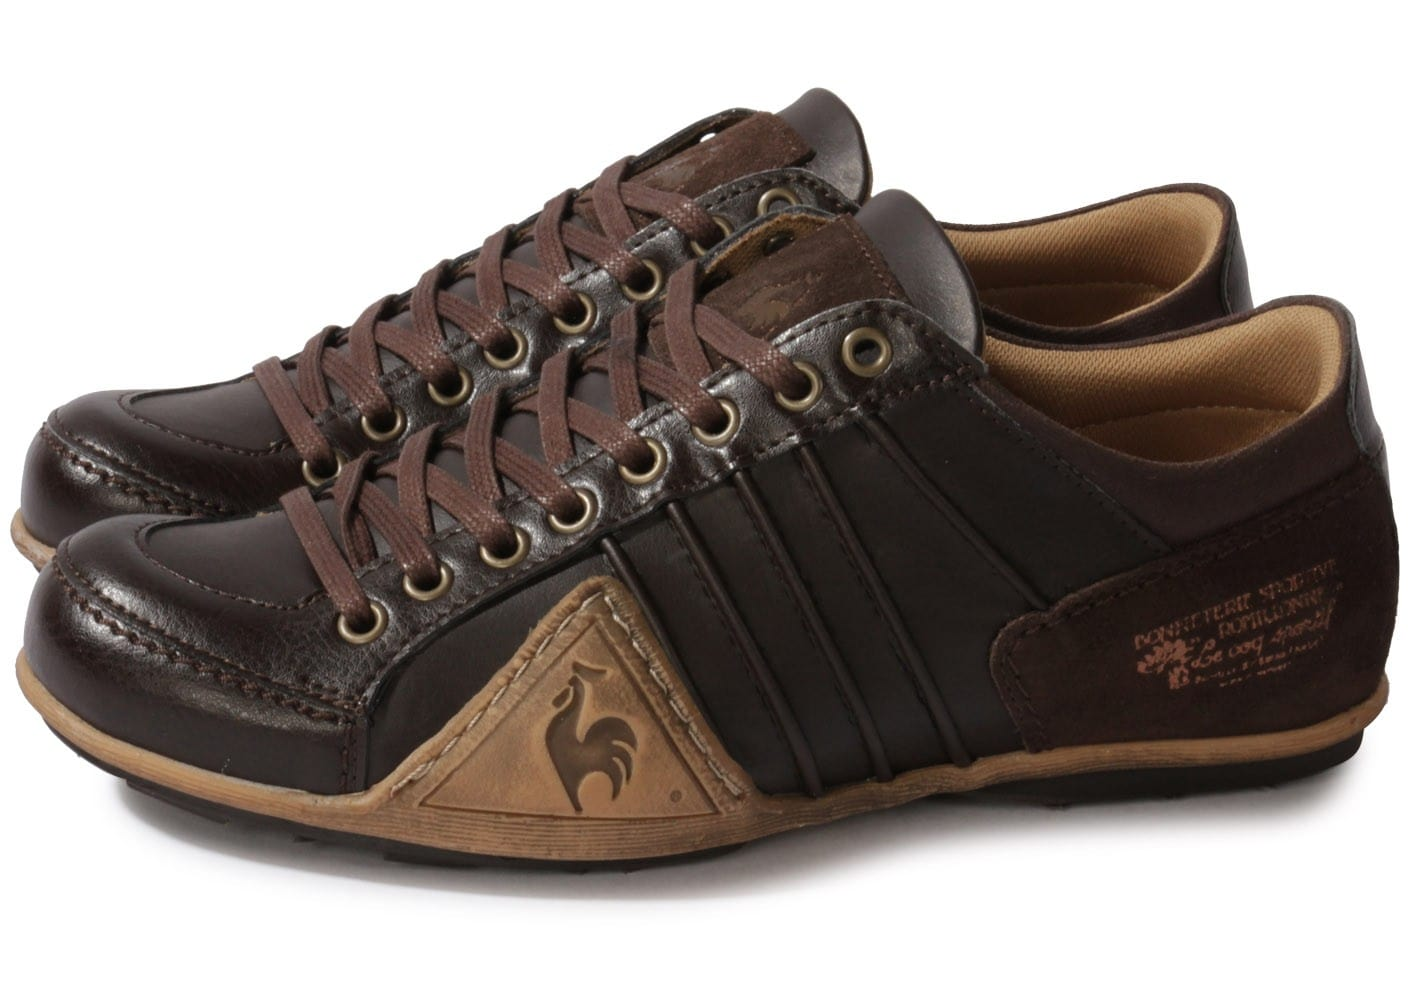 le coq sportif buffalo synt marron chaussures homme chausport. Black Bedroom Furniture Sets. Home Design Ideas